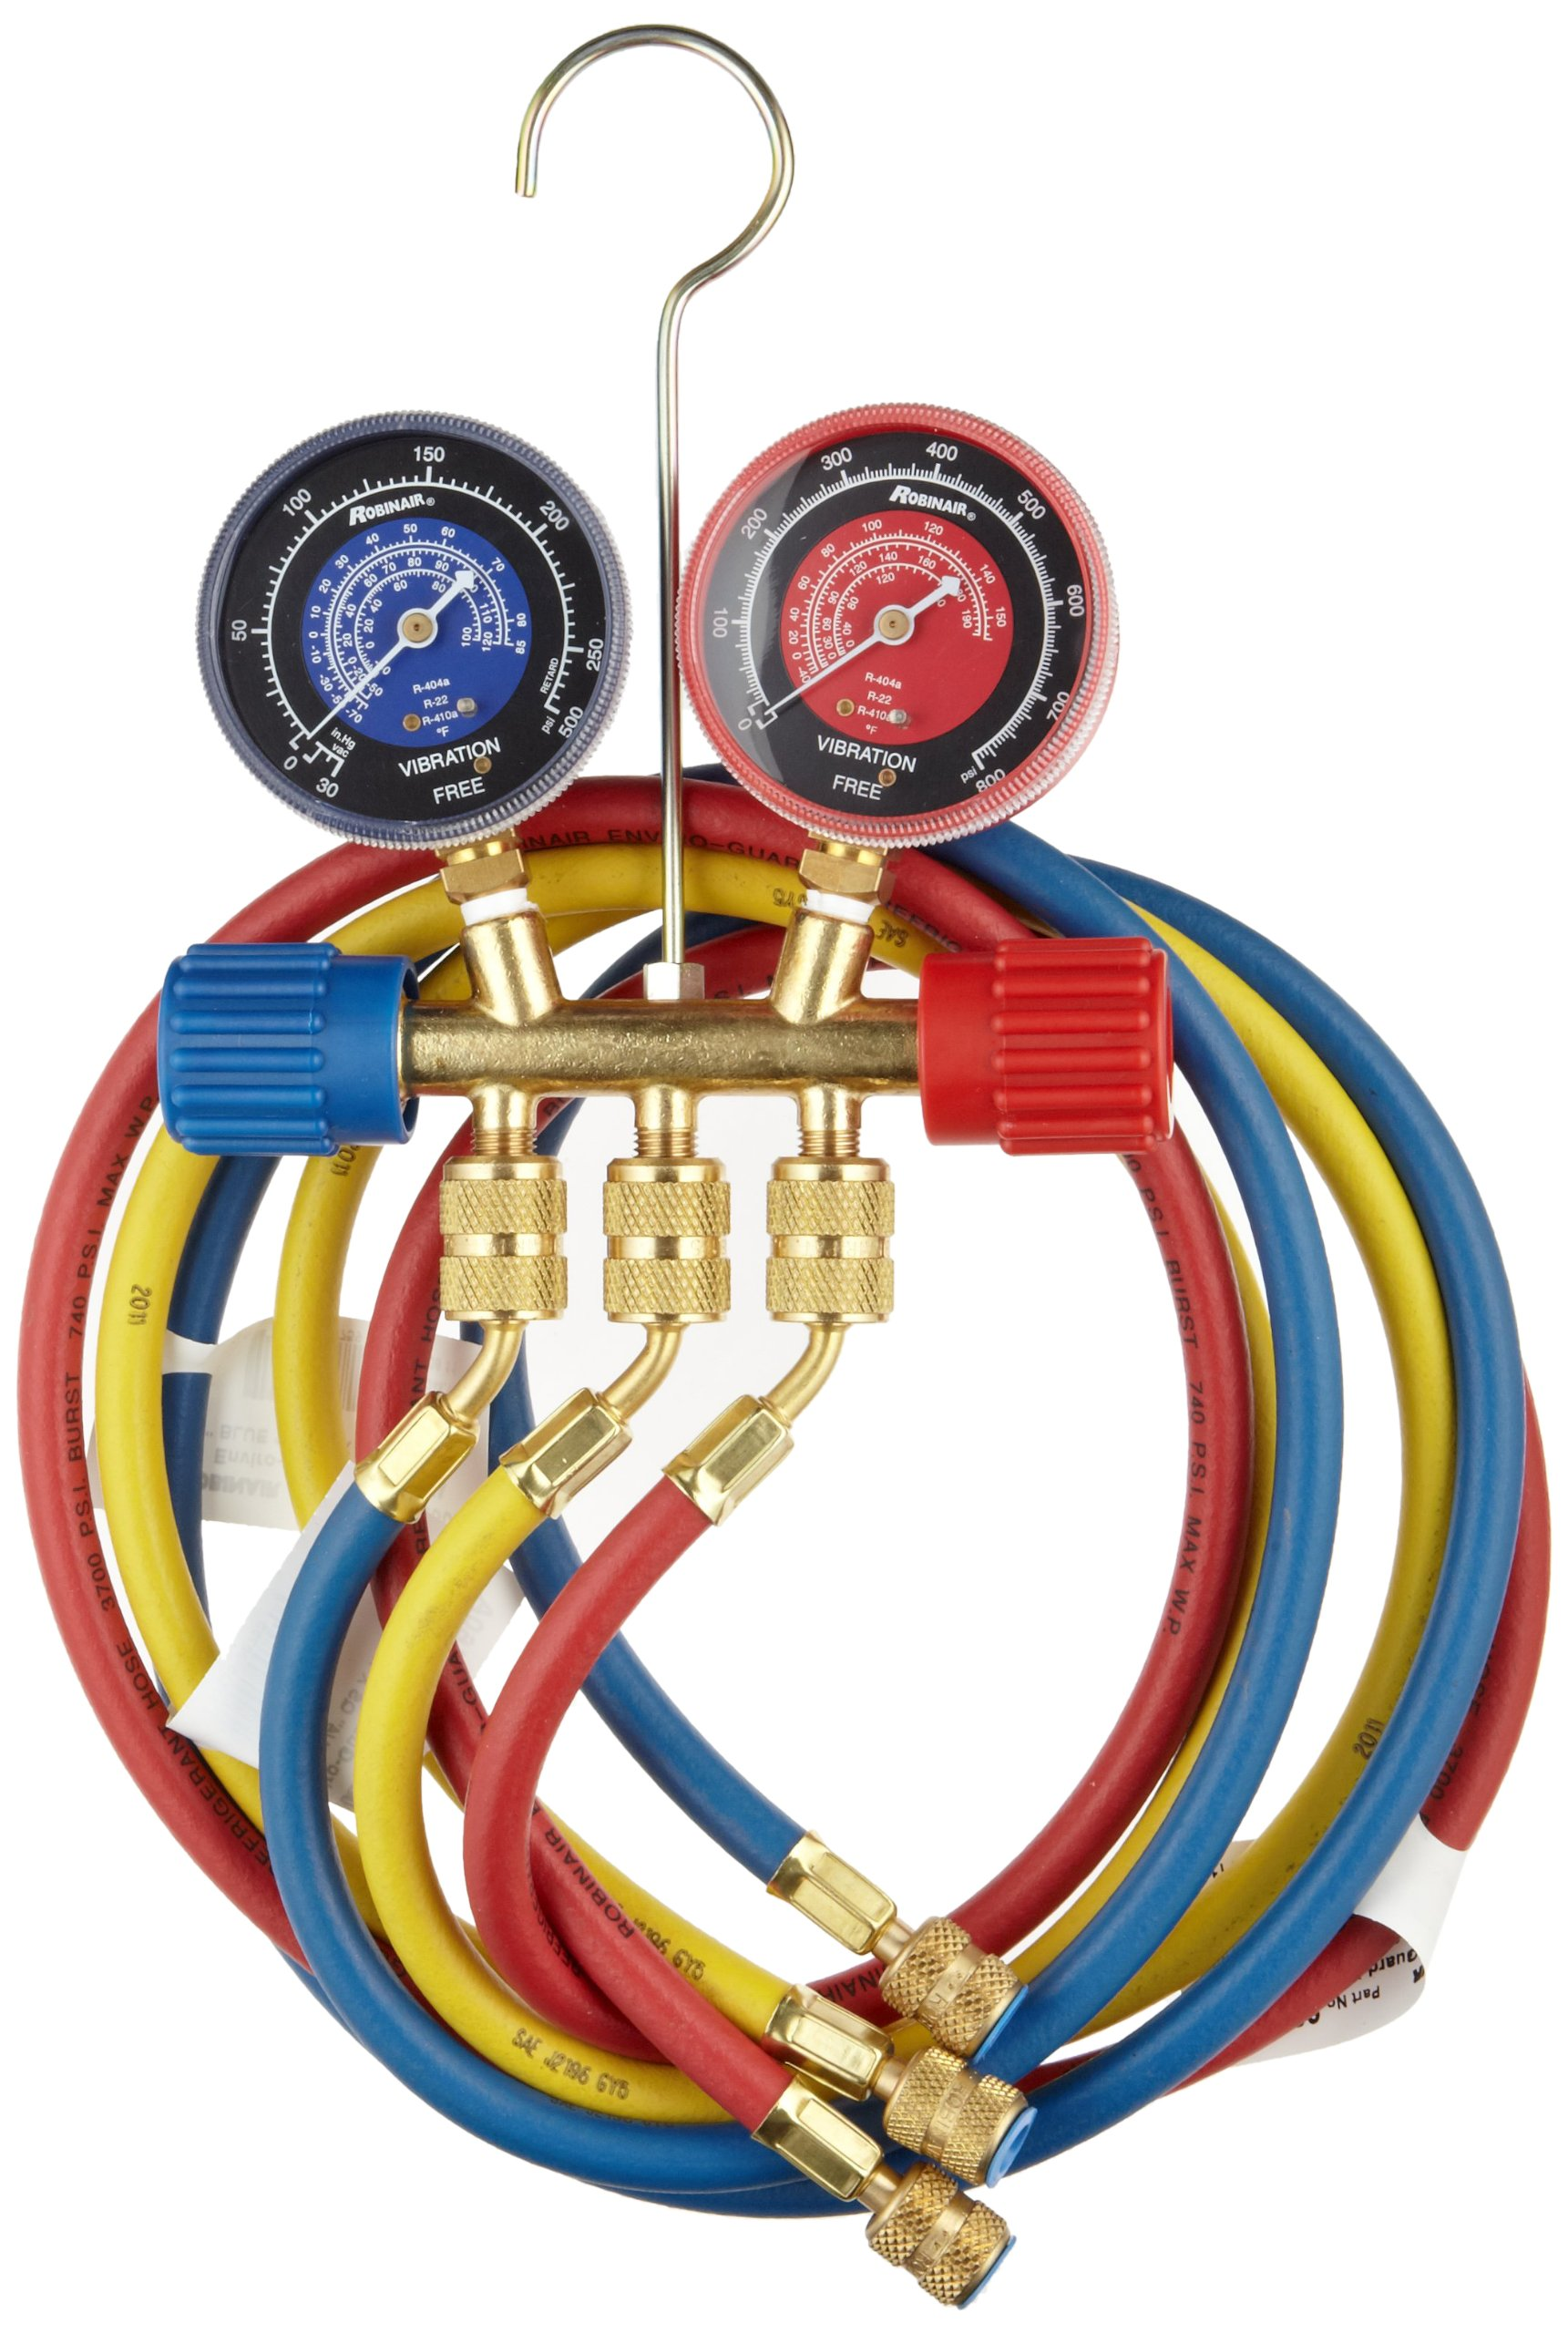 Robinair 40174 Two Way Brass Manifold with 60'' RYB Hoses, For R22/404A/410A Refrigerant